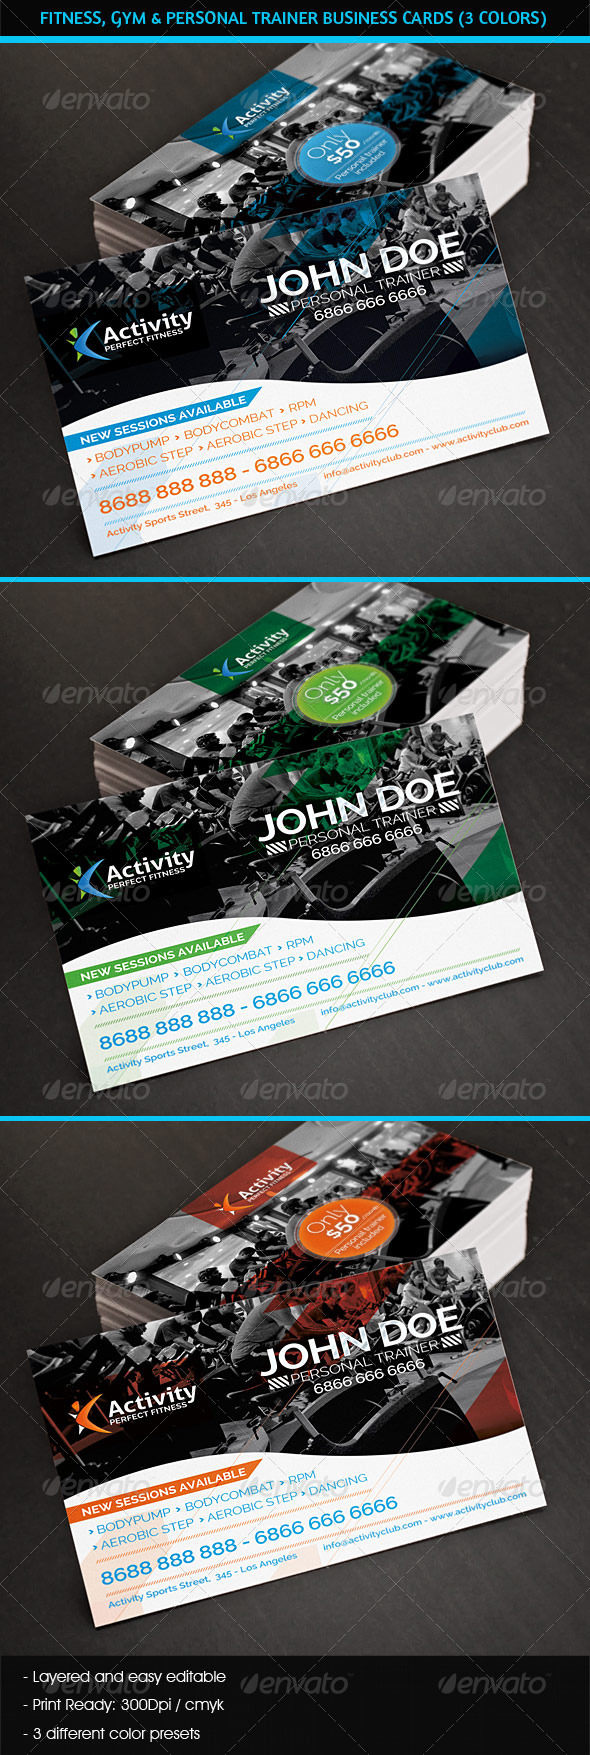 GraphicRiver Fitness Gym & Personal Trainer Business Cards 4928616